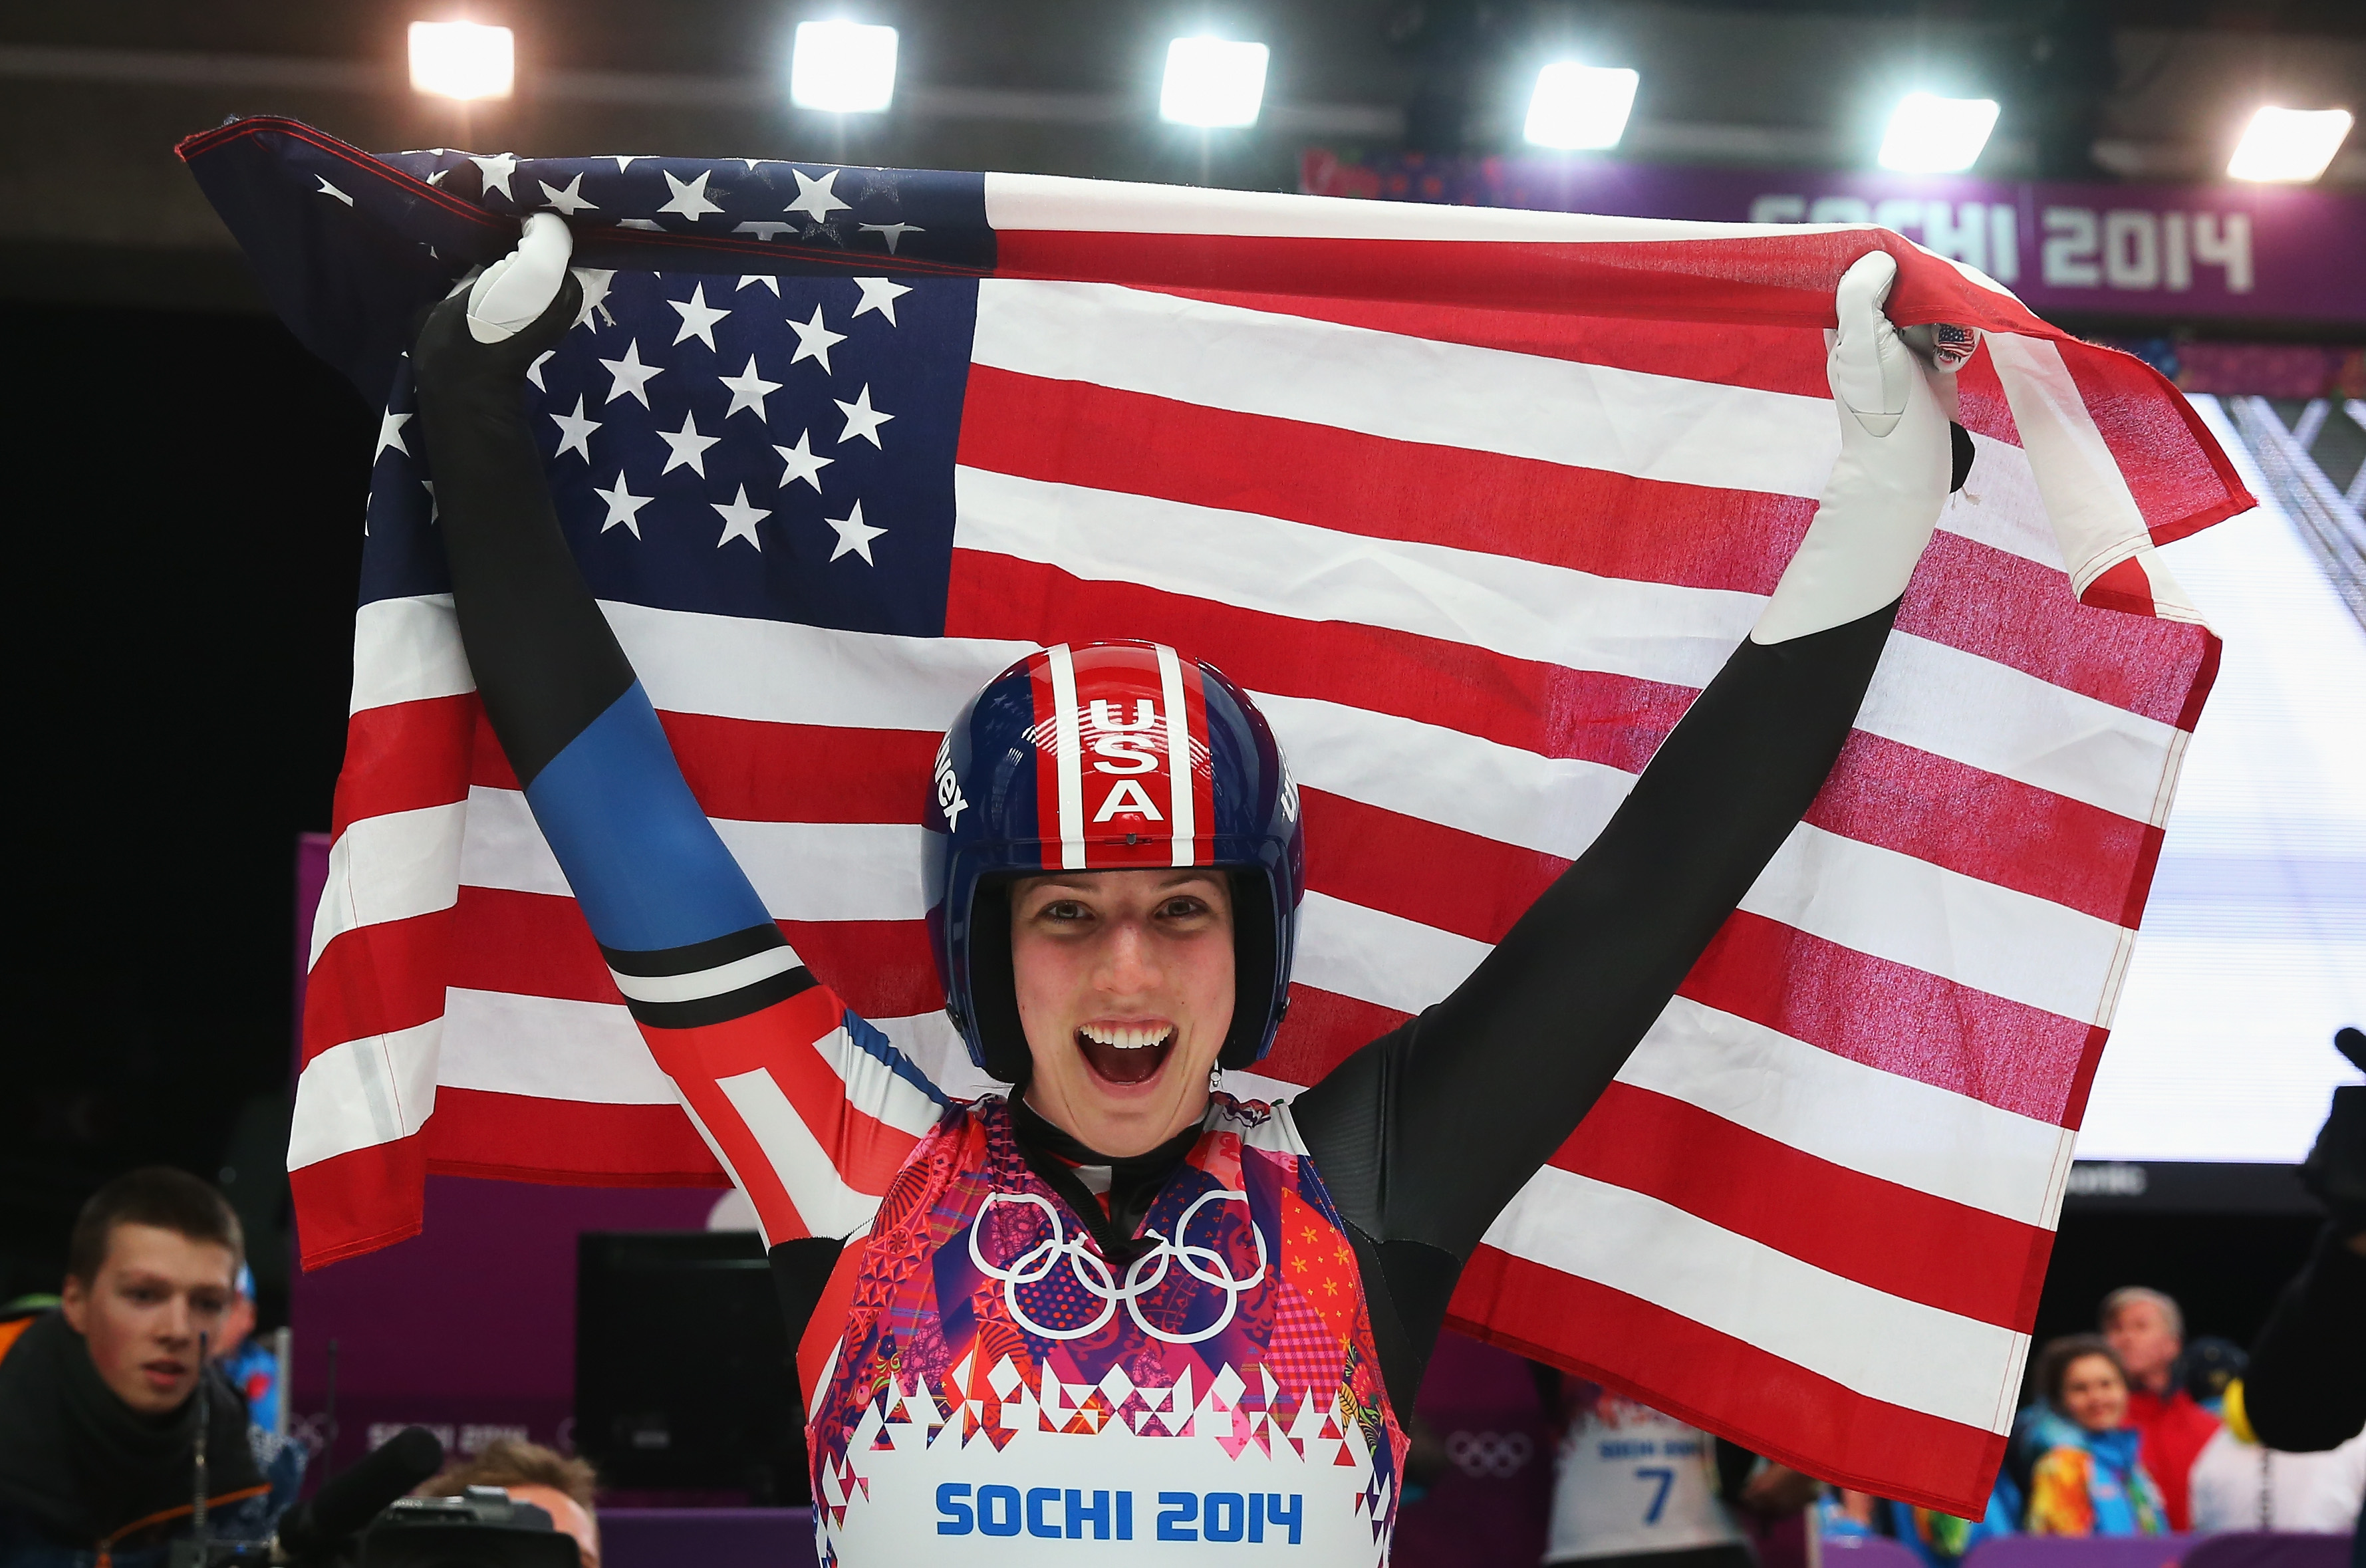 Erin Hamlin of the United States celebrates winning bronze medal in the Women's Luge Singles on Day 4 of the Sochi 2014 Winter Olympics at Sliding Center Sanki on February 11, 2014 in Sochi, Russia. (Alexander Hassenstein—Getty Images)